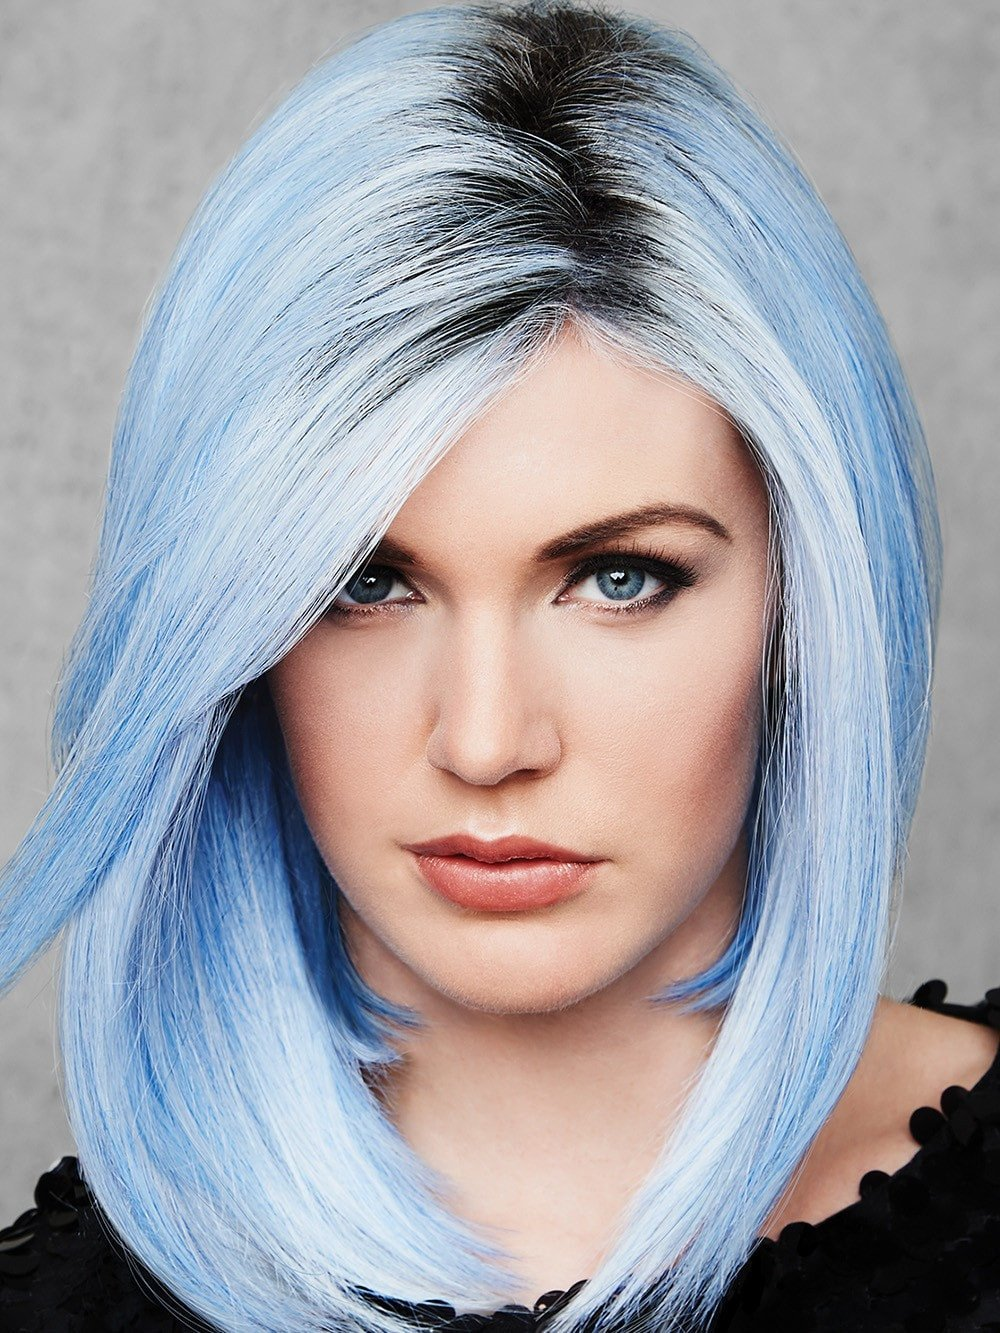 Out Of The Blue | HF Synthetic Wig by Hairdo